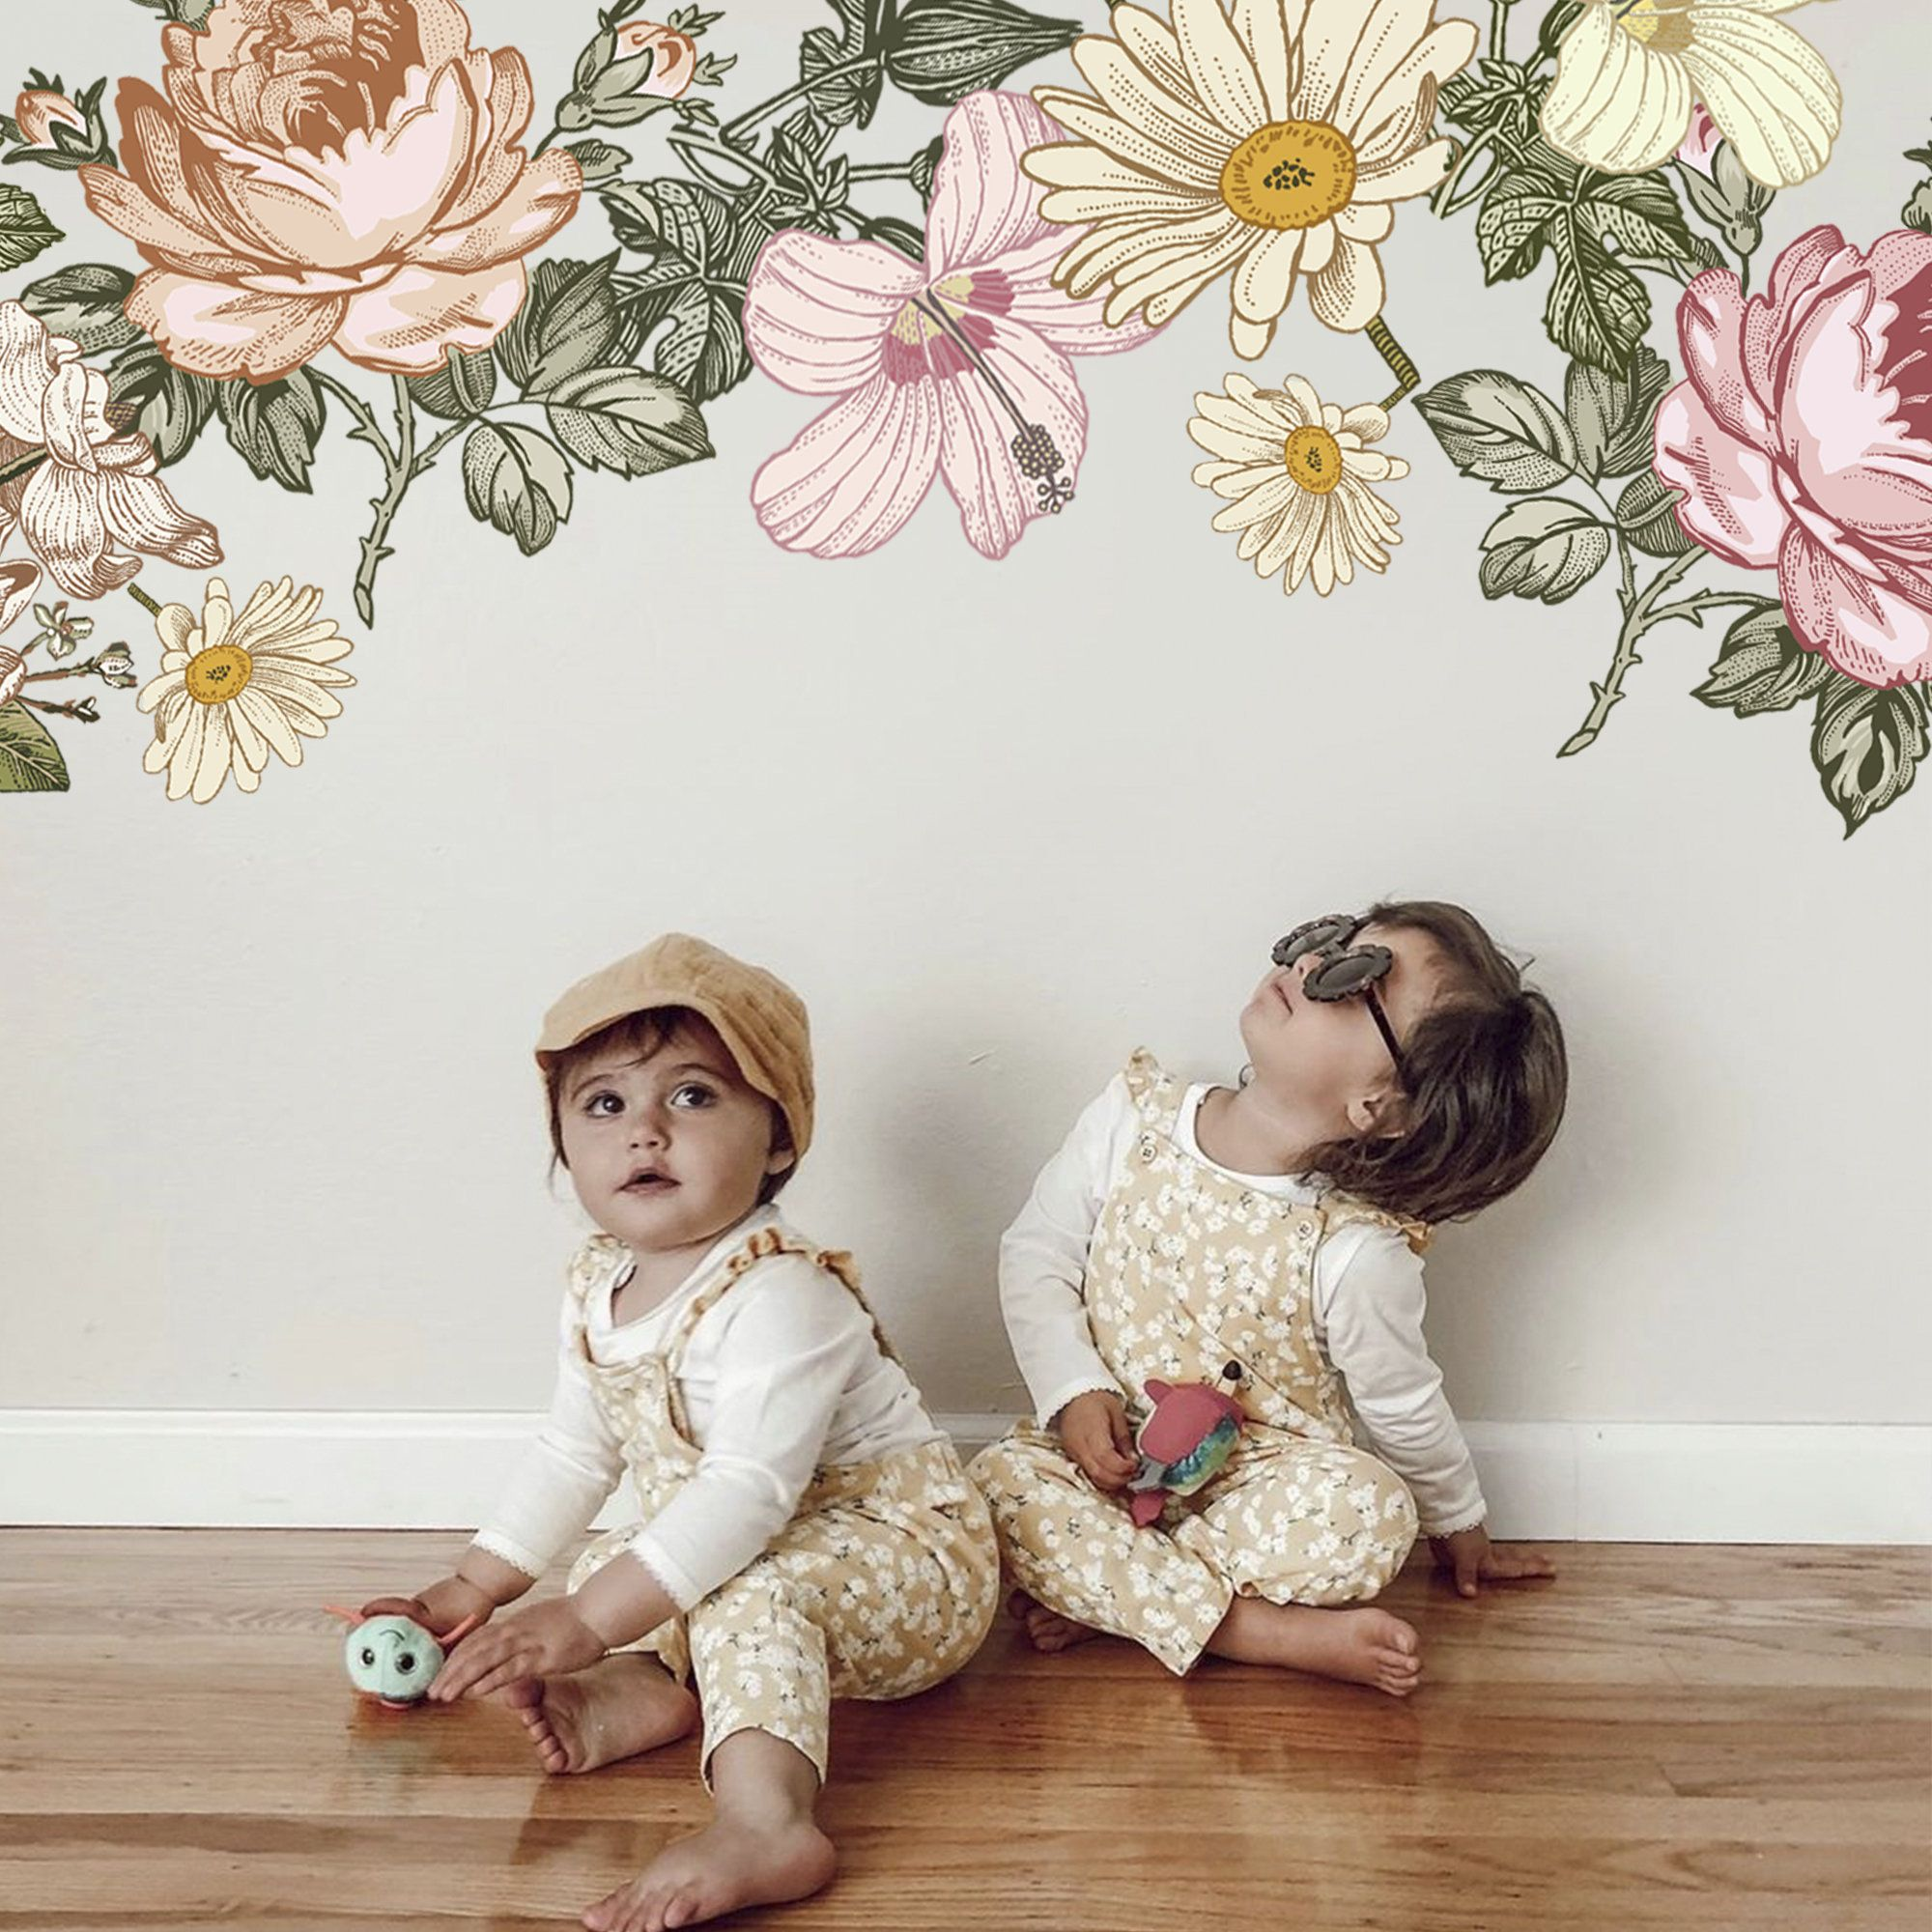 Flower Wall Decal Flowers Wall Decals Flowers Decal Peony Floral Wall Decals Peel Stick Flowers Vintage Nursery Peony Floral Wall Decals